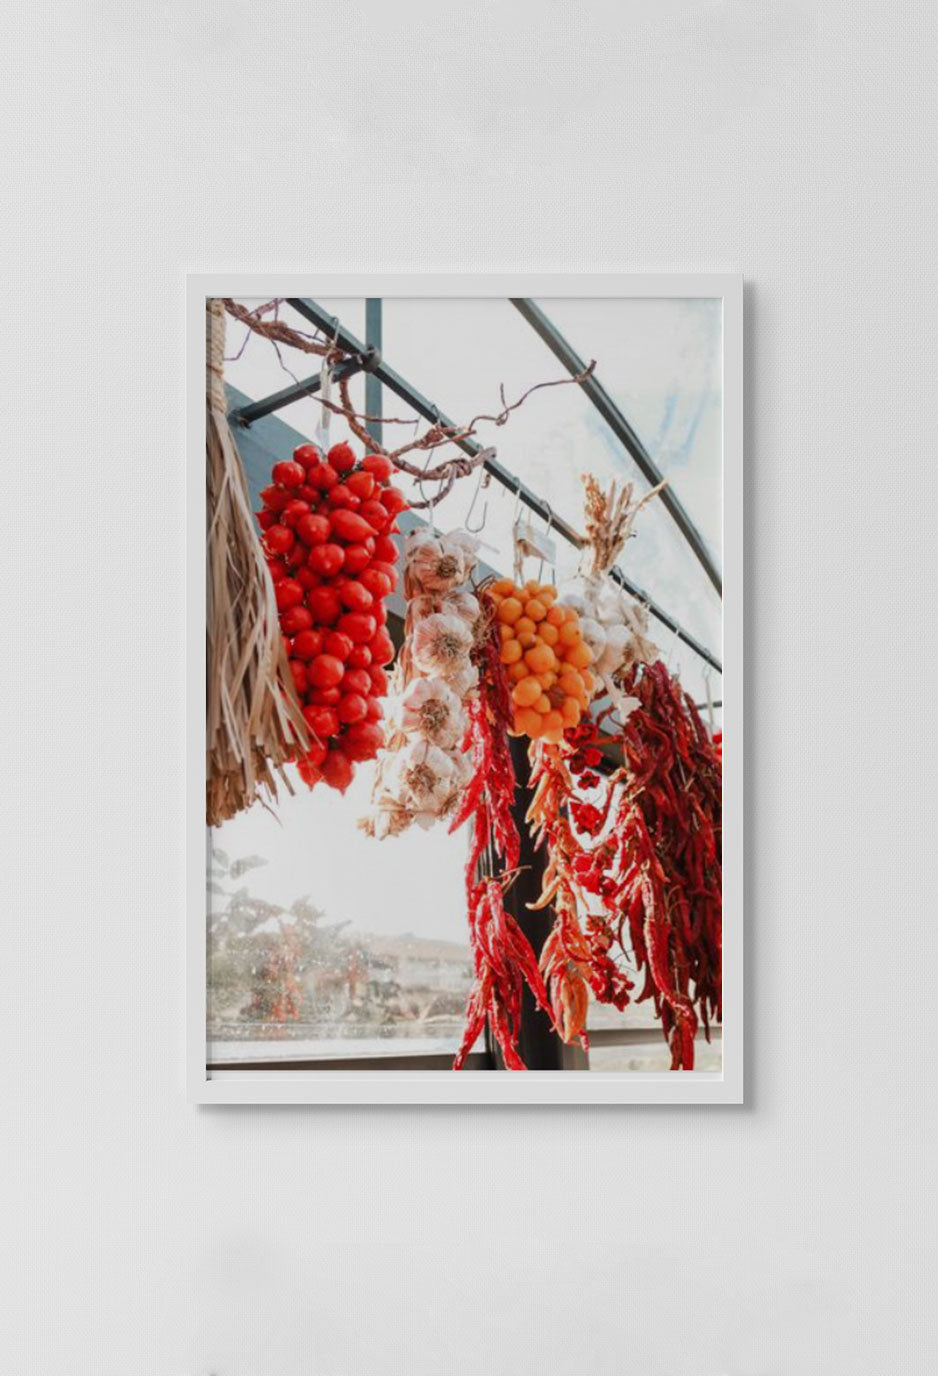 image of photograph of fresh spices hanging at market with sky in background in white frame on white wall.